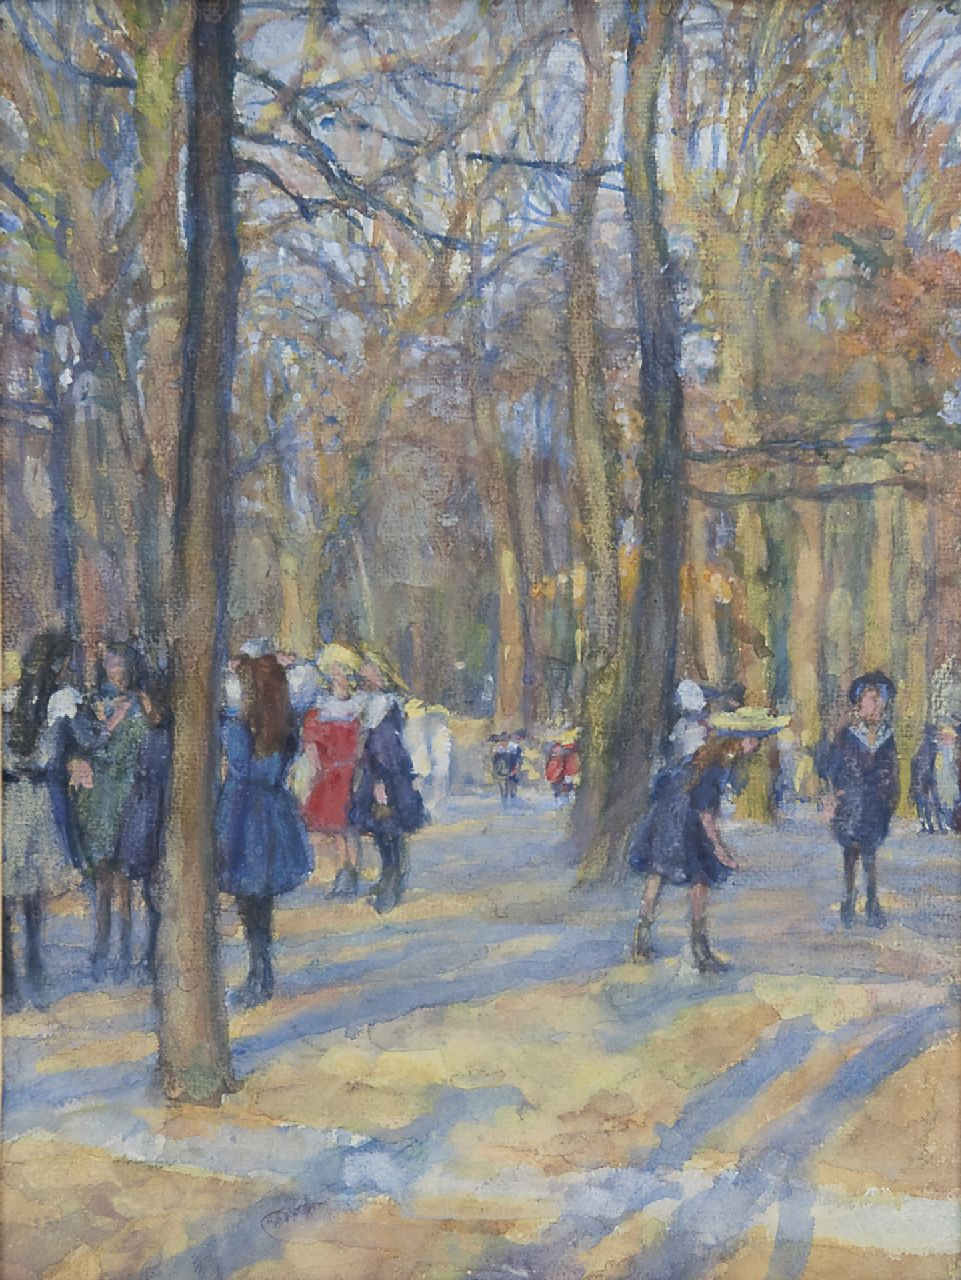 Erich Büttner | Children at the zoo, Berlin, watercolour on paper, 34.0 x 25.5 cm, signed l.l., and with monogram on the reverse and dated '09